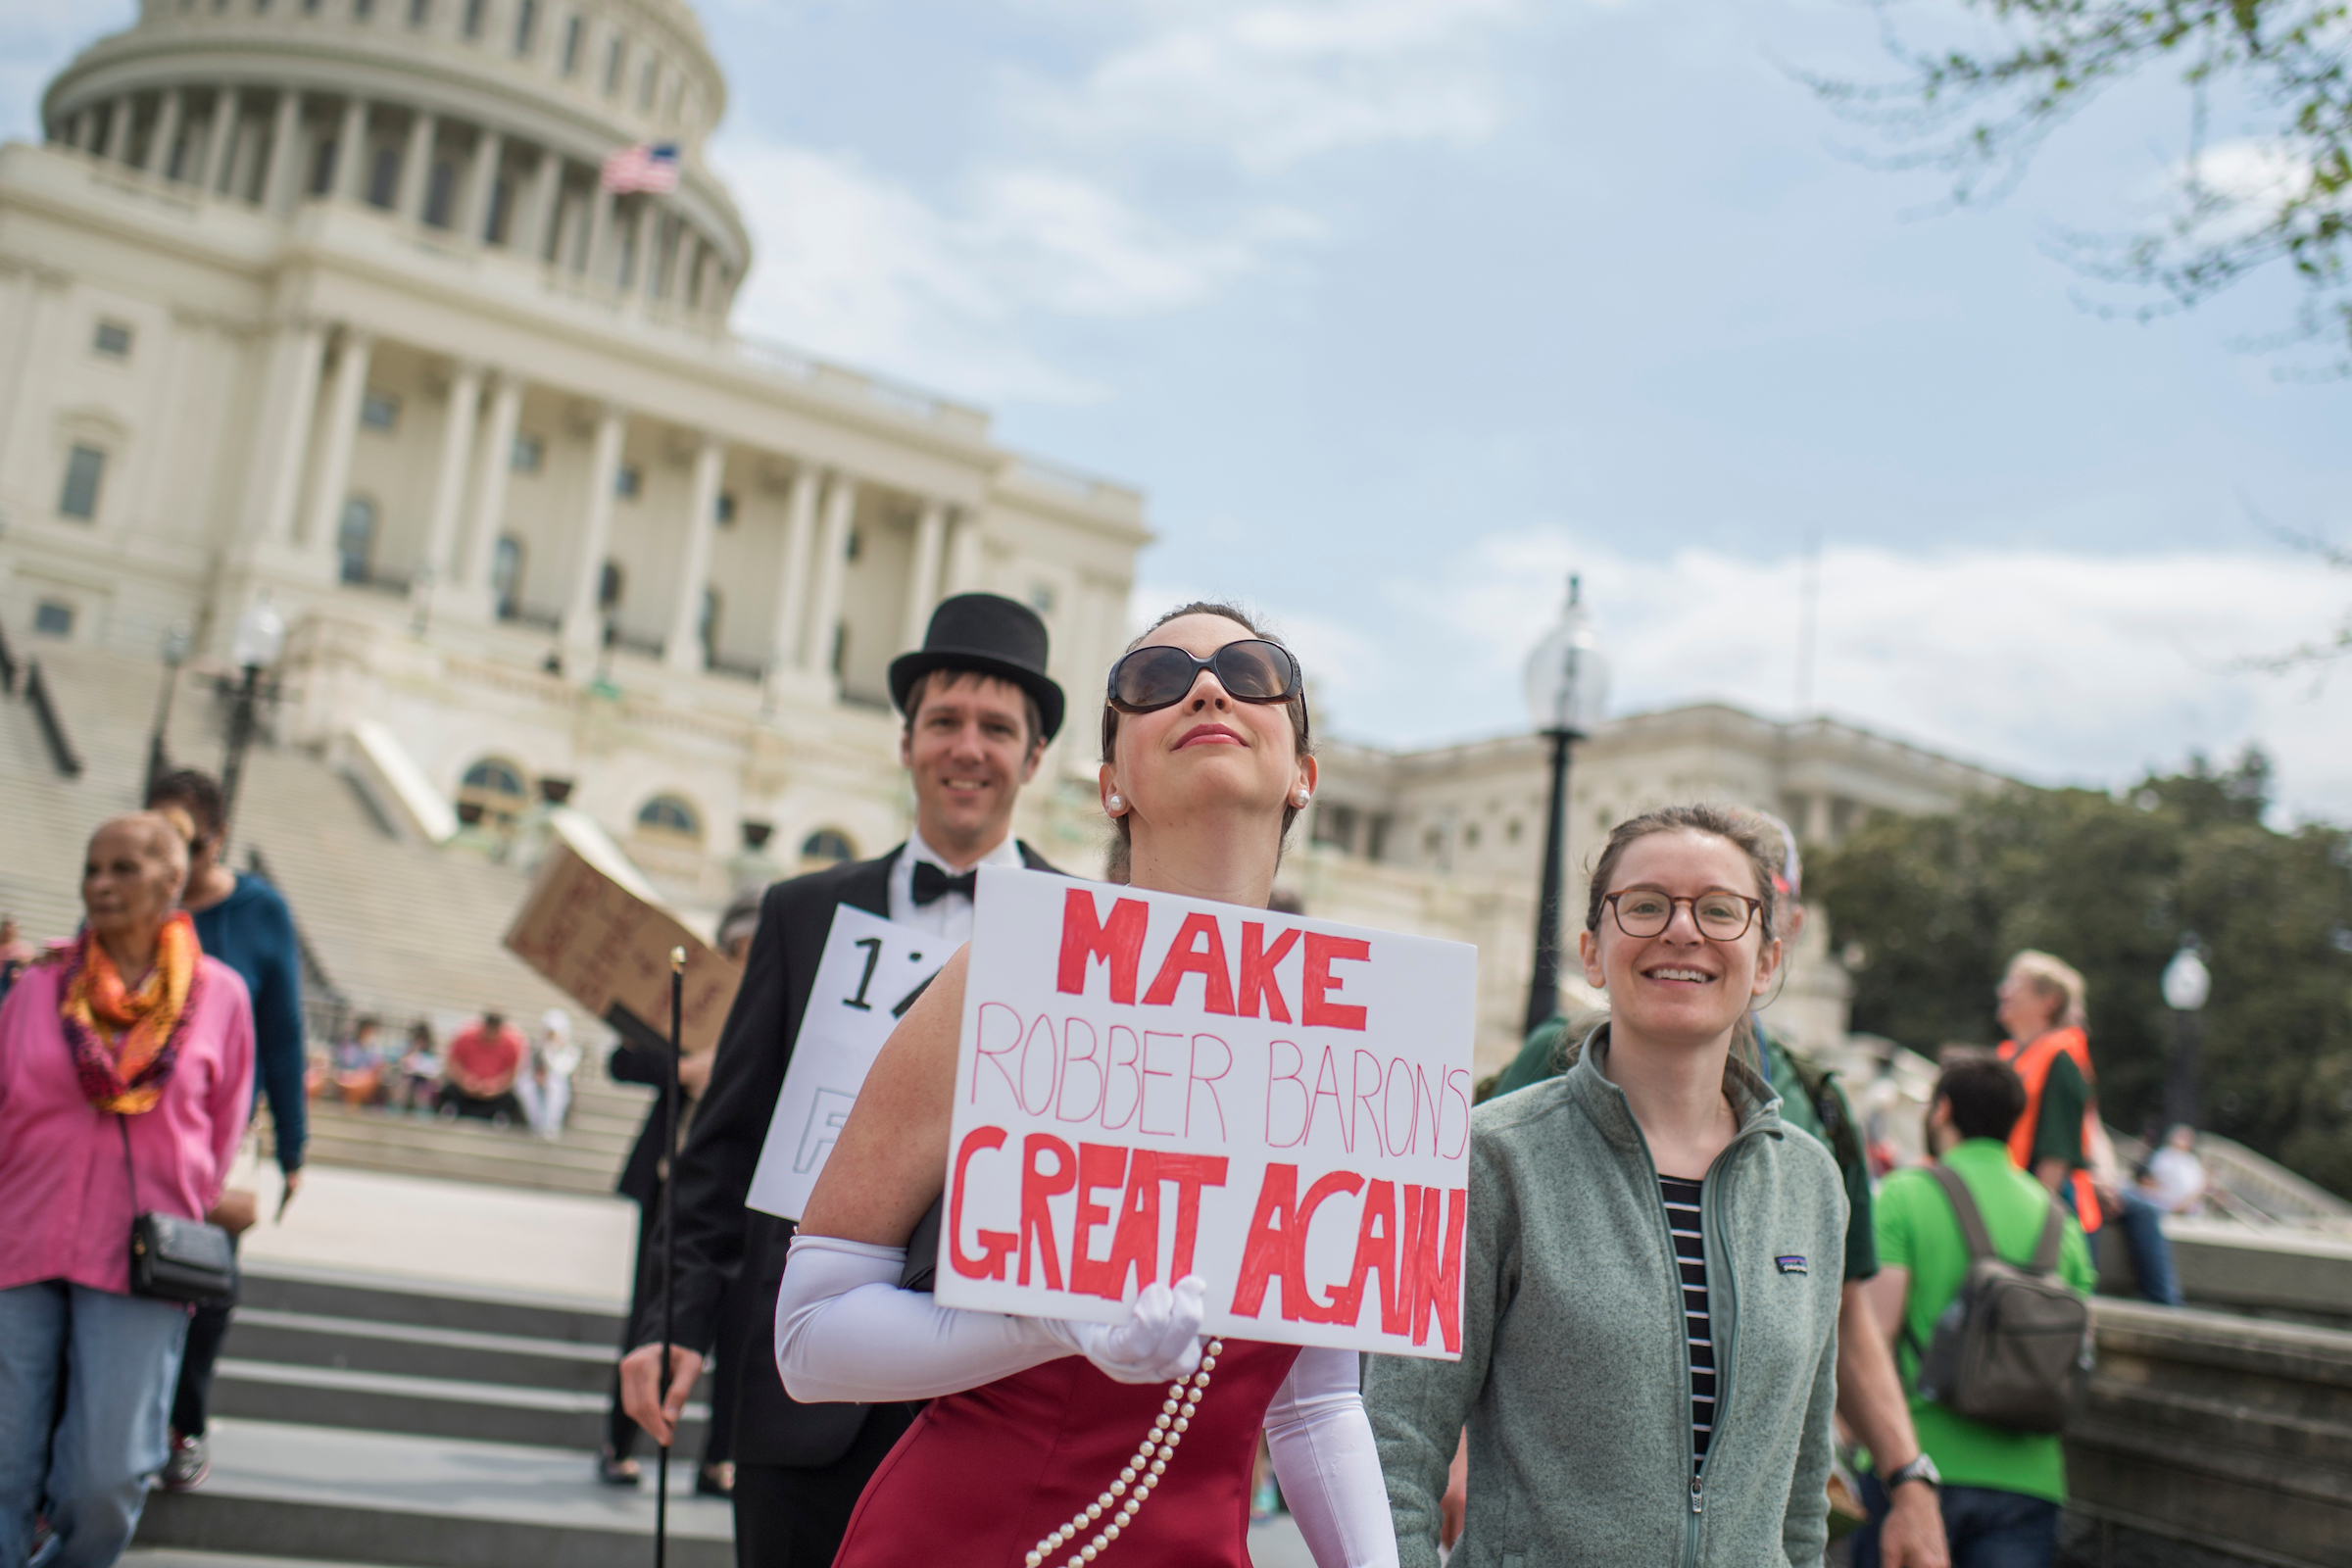 UNITED STATES - APRIL 15: People gather for the Tax March rally on the west lawn of the Capitol to call on President Trump to release his tax returns, April 15, 2017. (Photo By Tom Williams/CQ Roll Call)